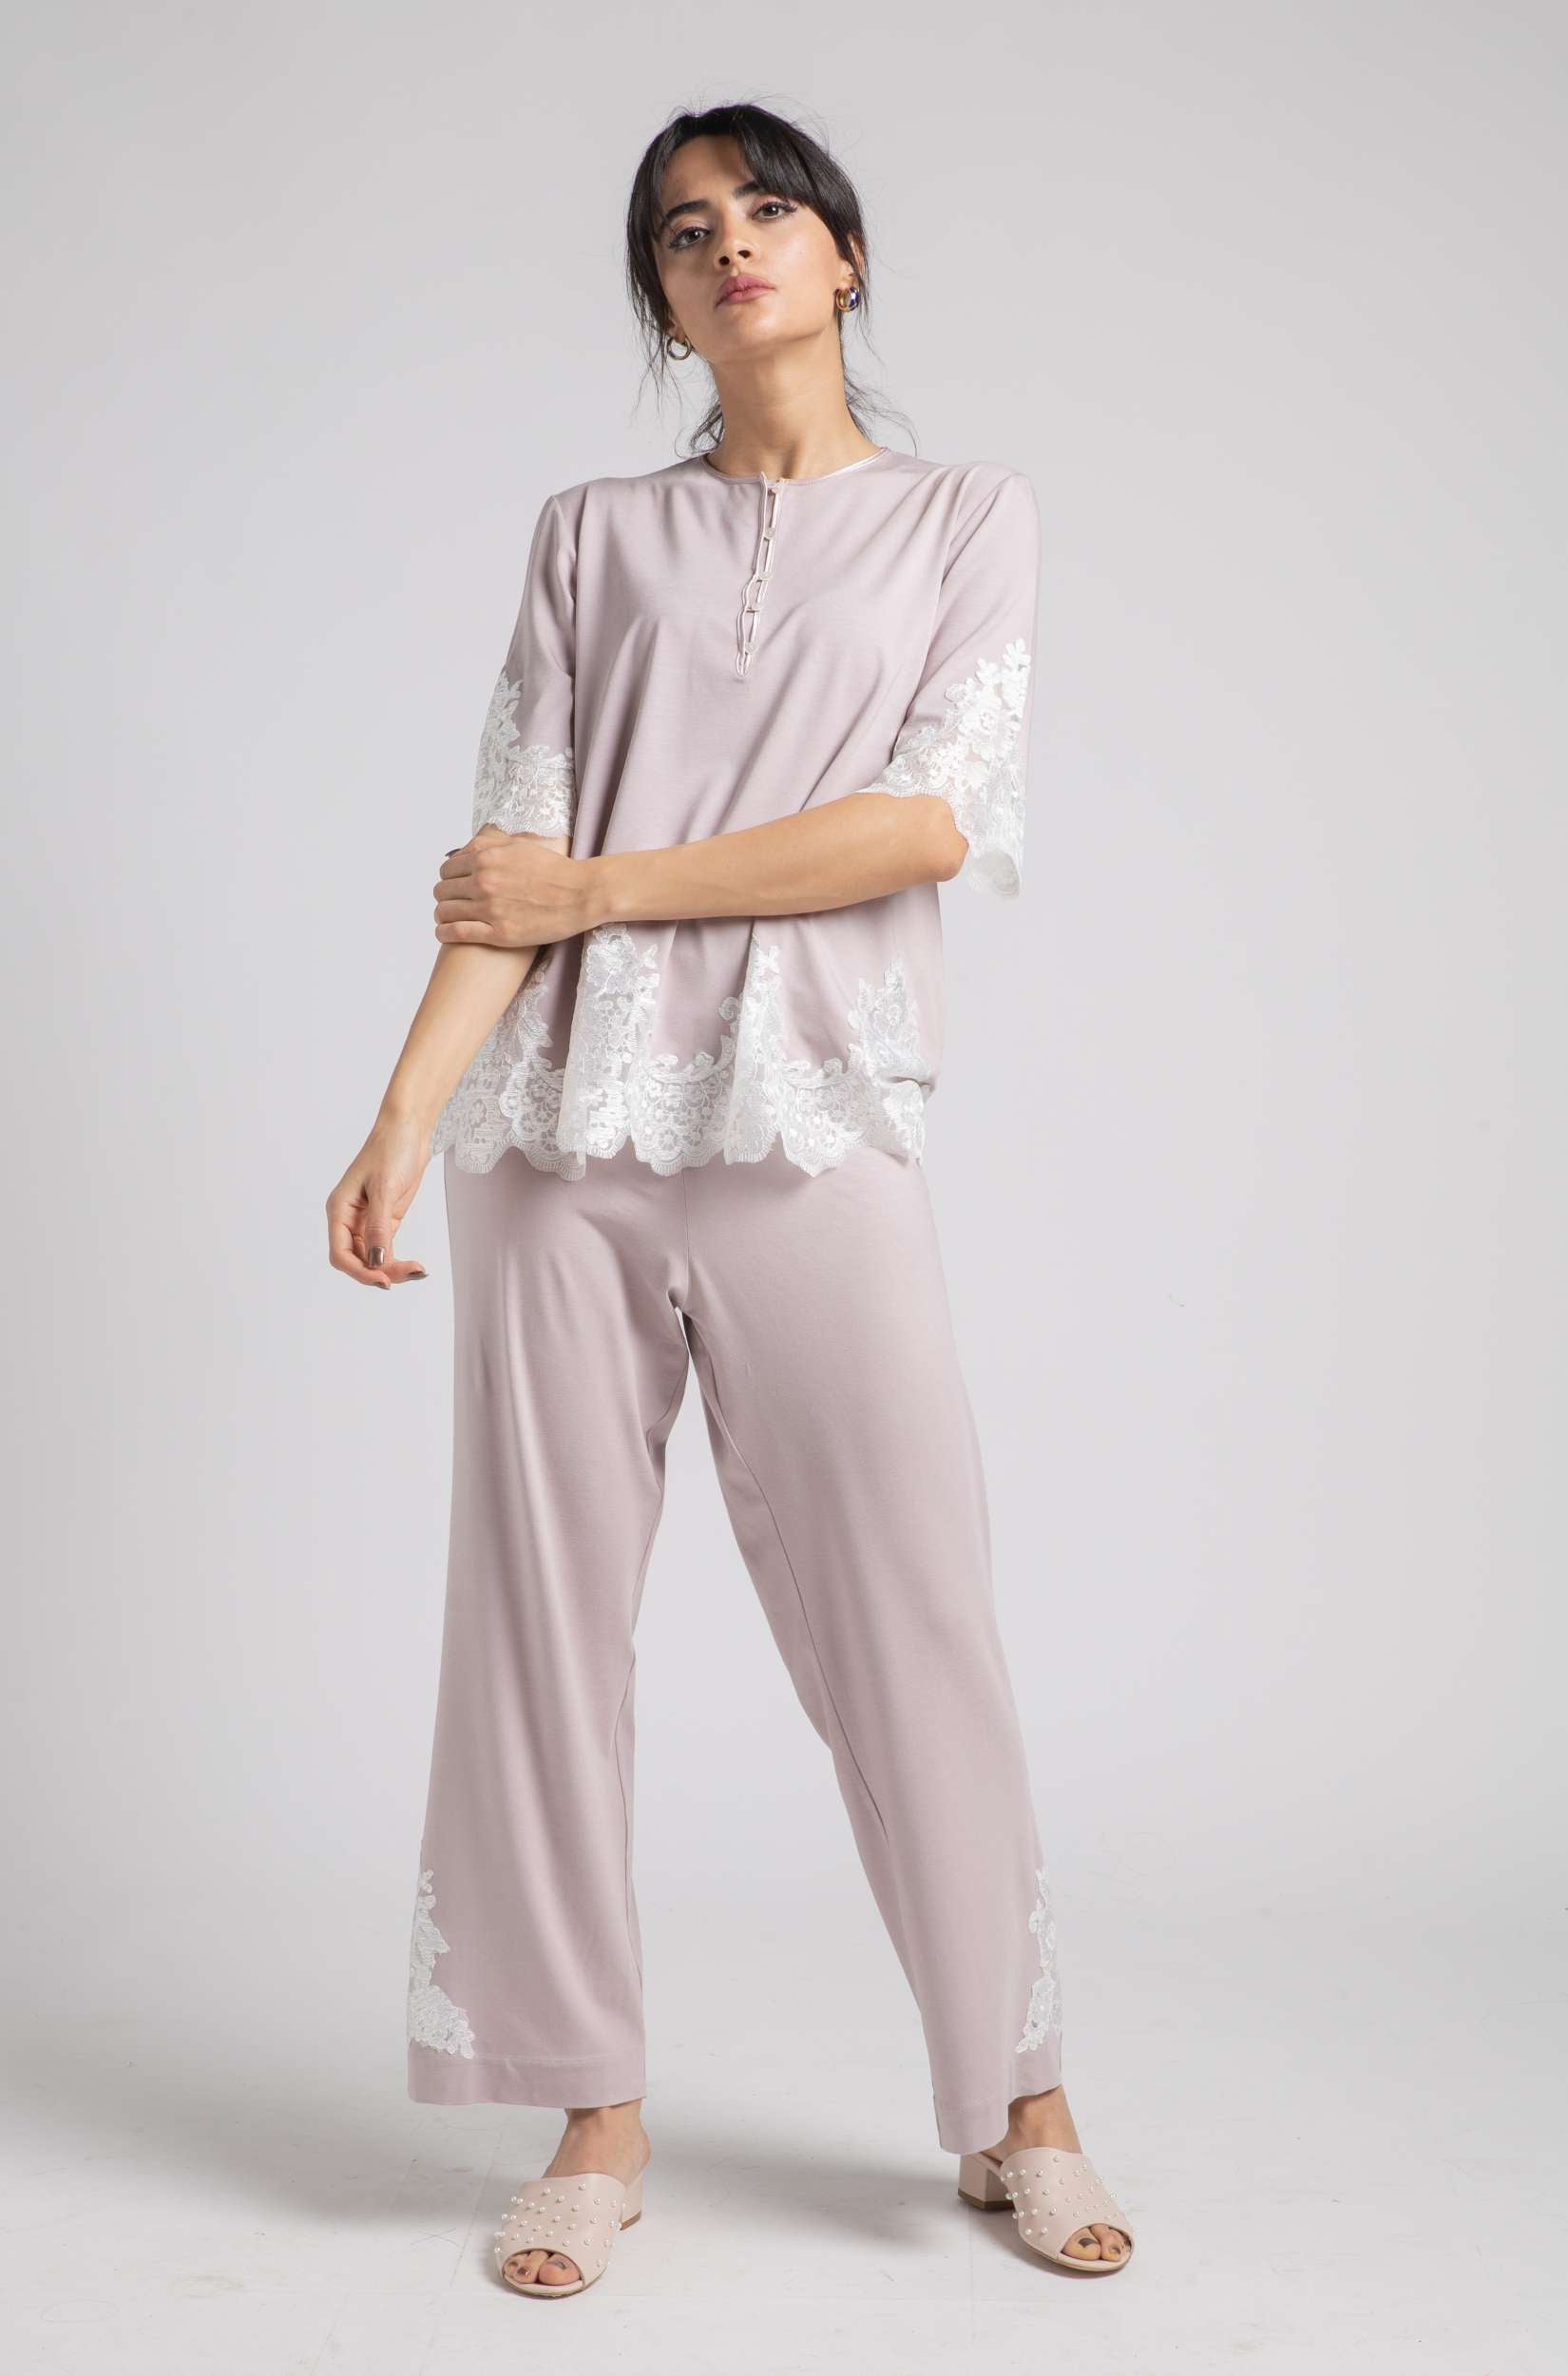 Cotton Pajama - Powder Spring - Off White